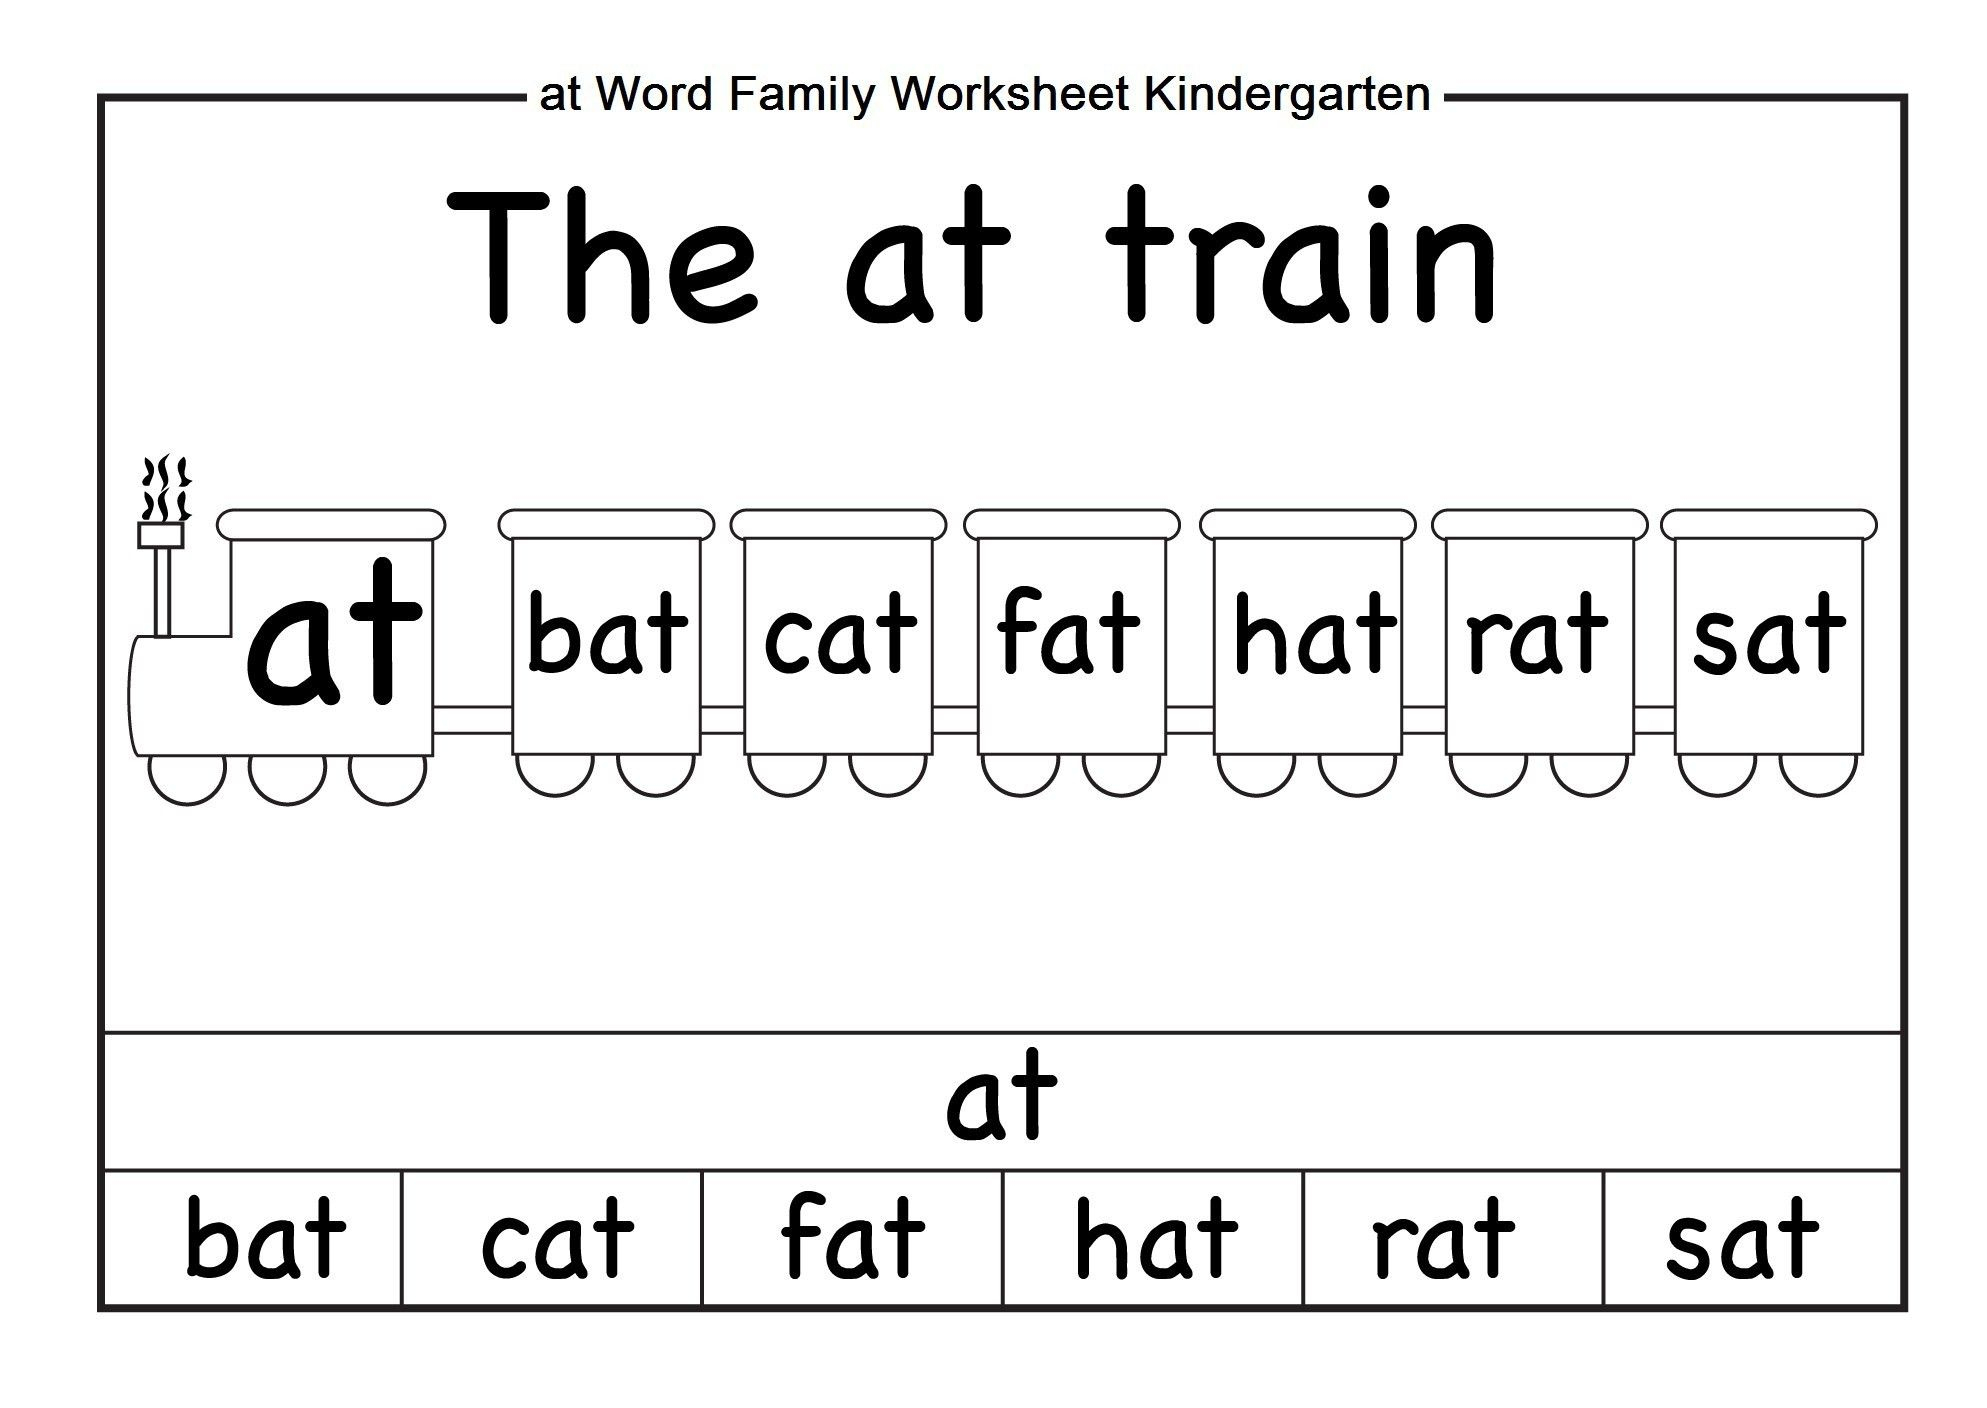 Word Family Worksheets Kindergarten - Briefencounters Worksheet - Free Printable Word Family Worksheets For Kindergarten